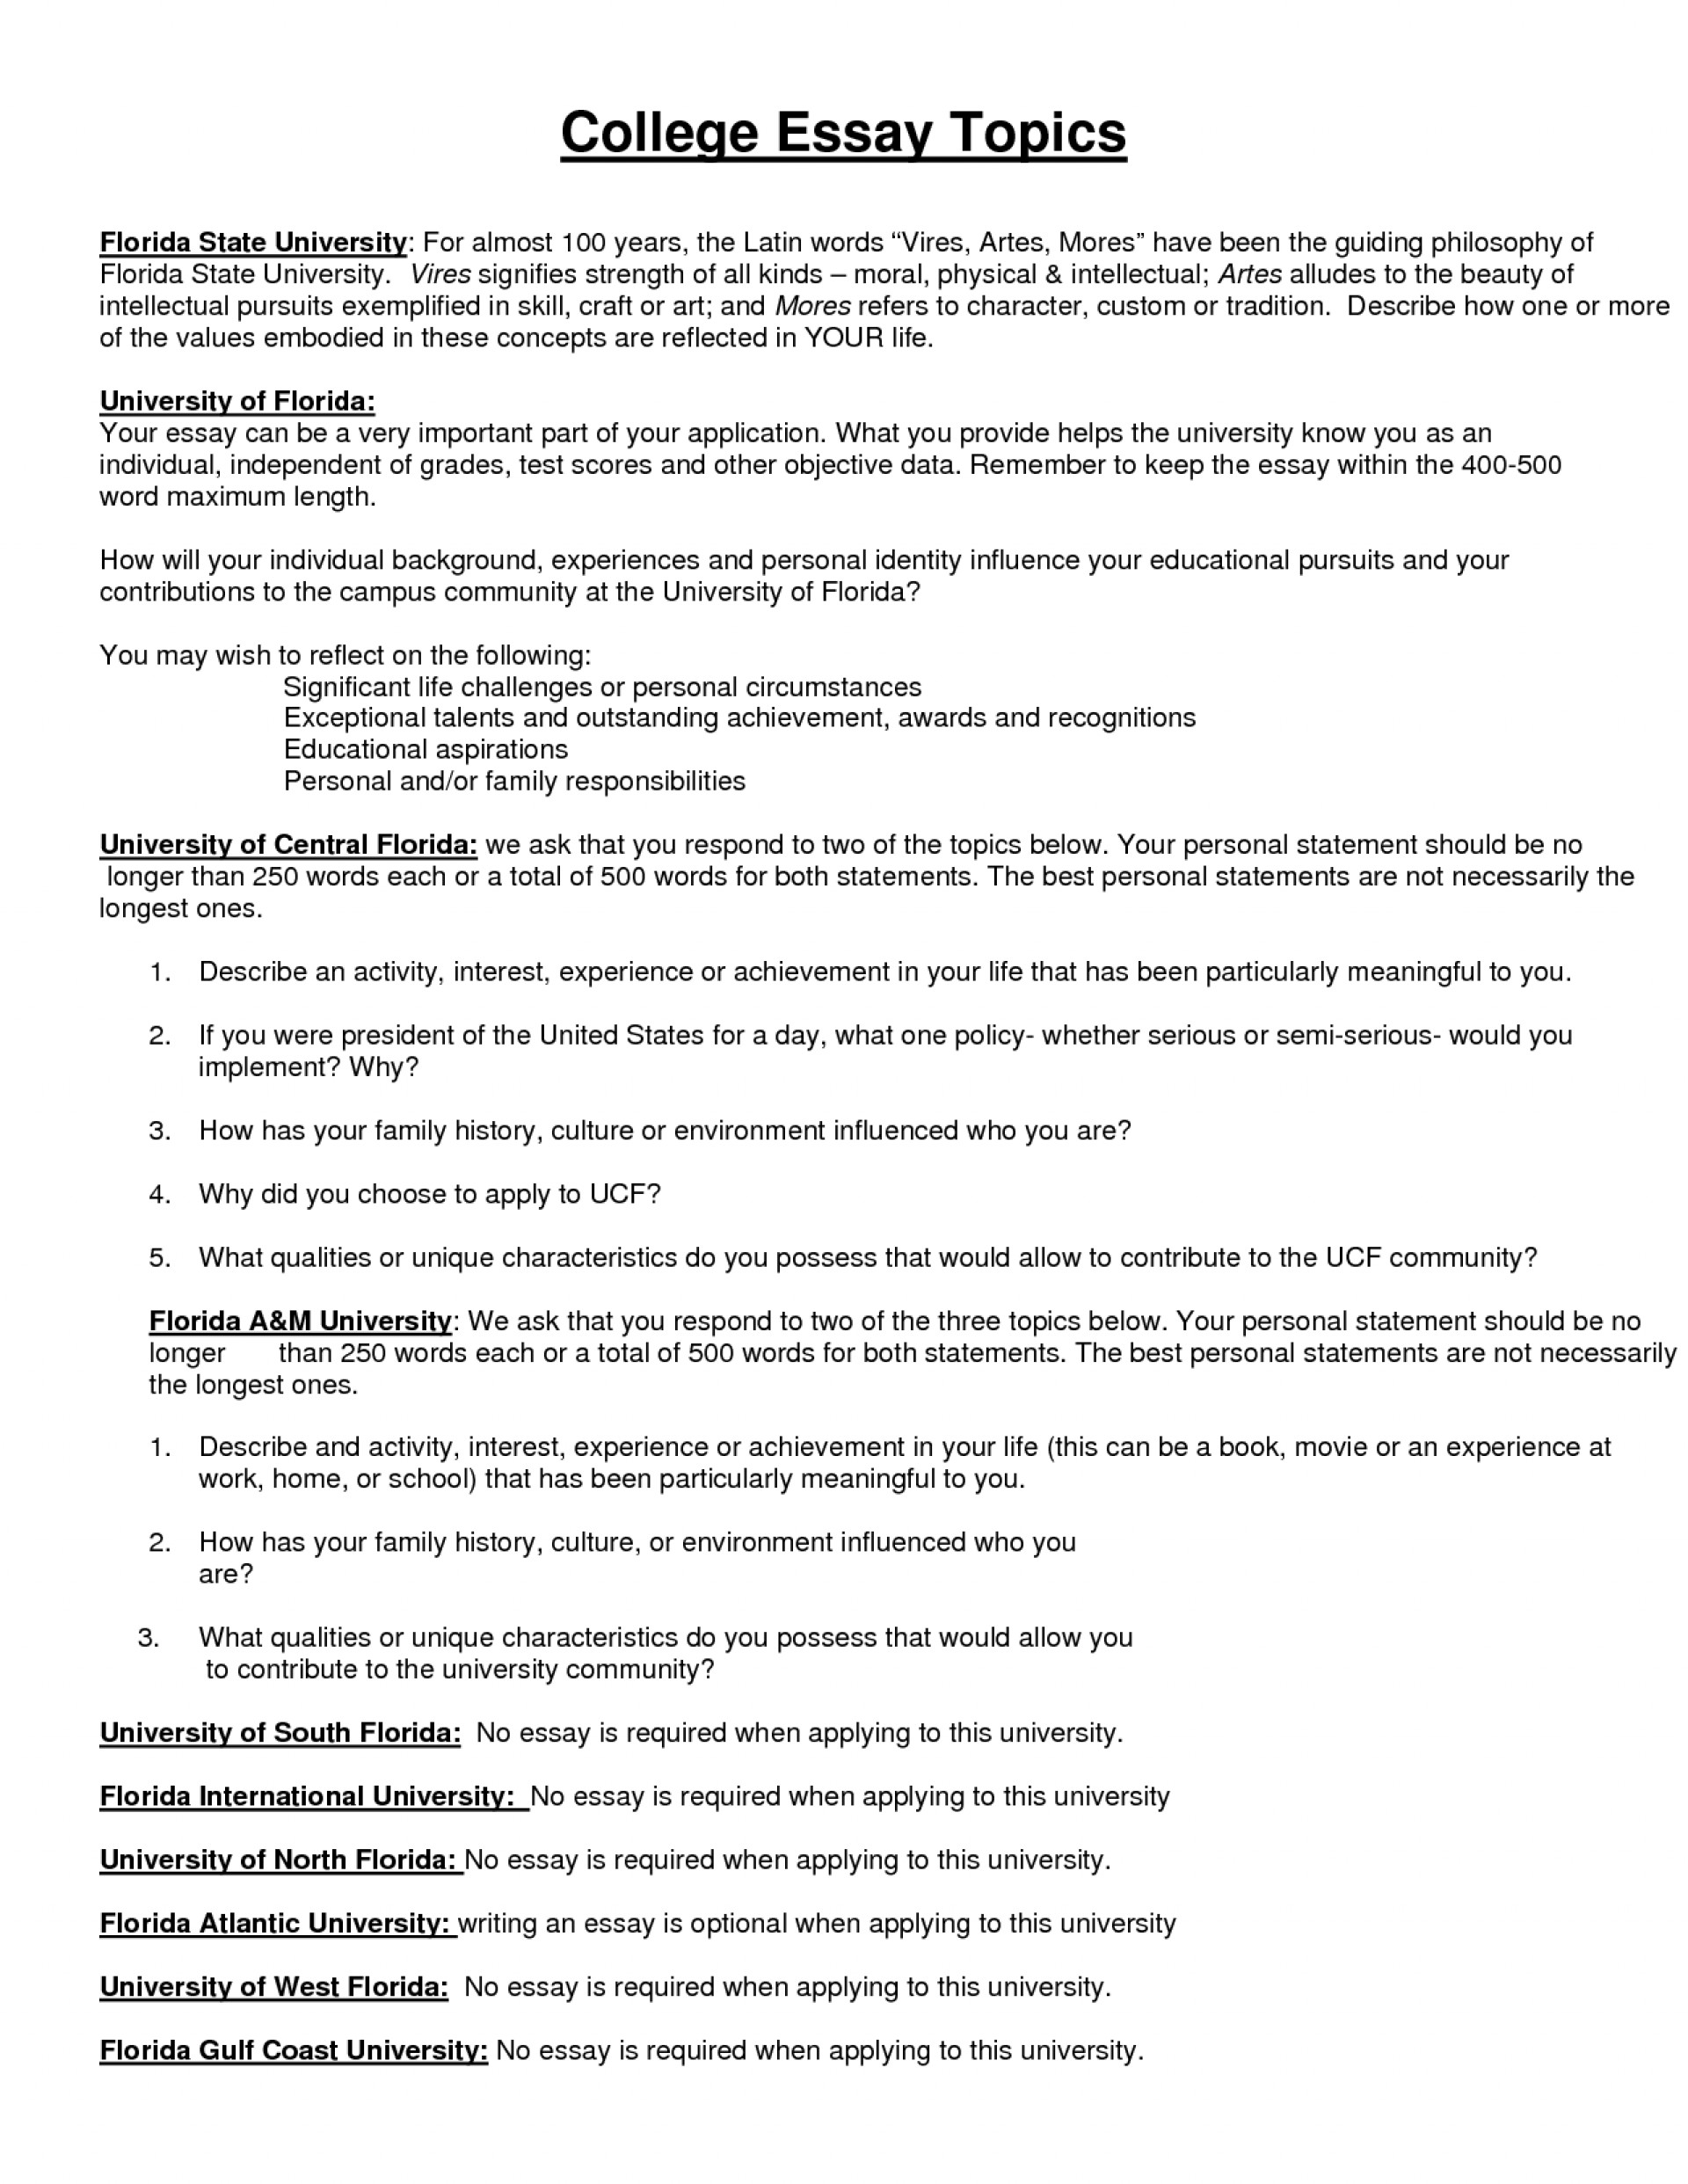 006 Free Topic Essay Resume Examples Templates How To Write Good For College Example Best Surprising Topics Composition High School Students Job Interview 1920